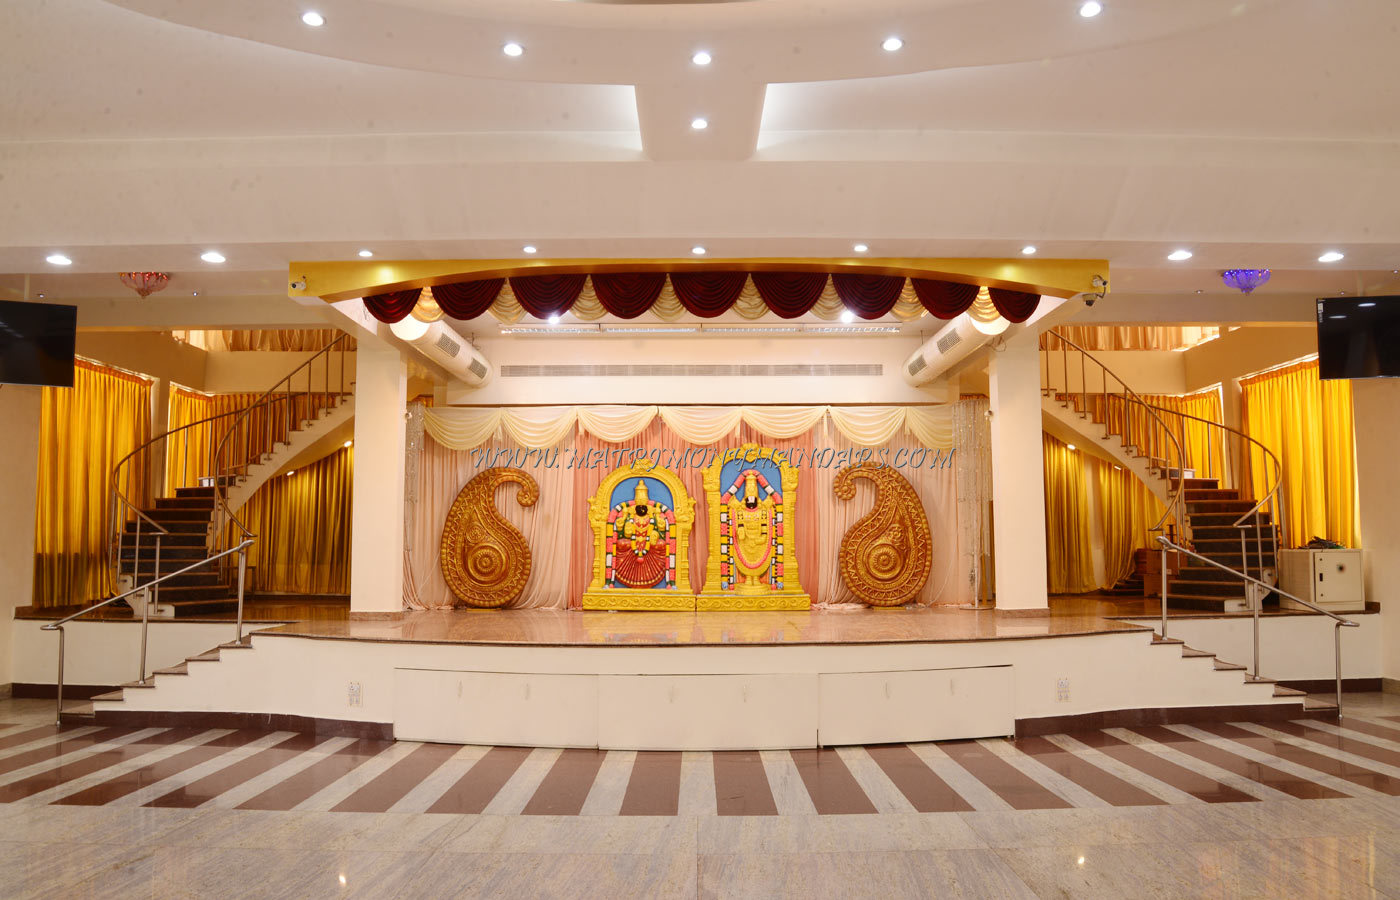 Find the availability of the Sanandaa Kalyana Mandapam (A/C) in Rajakilpakkam, Chennai and avail special offers